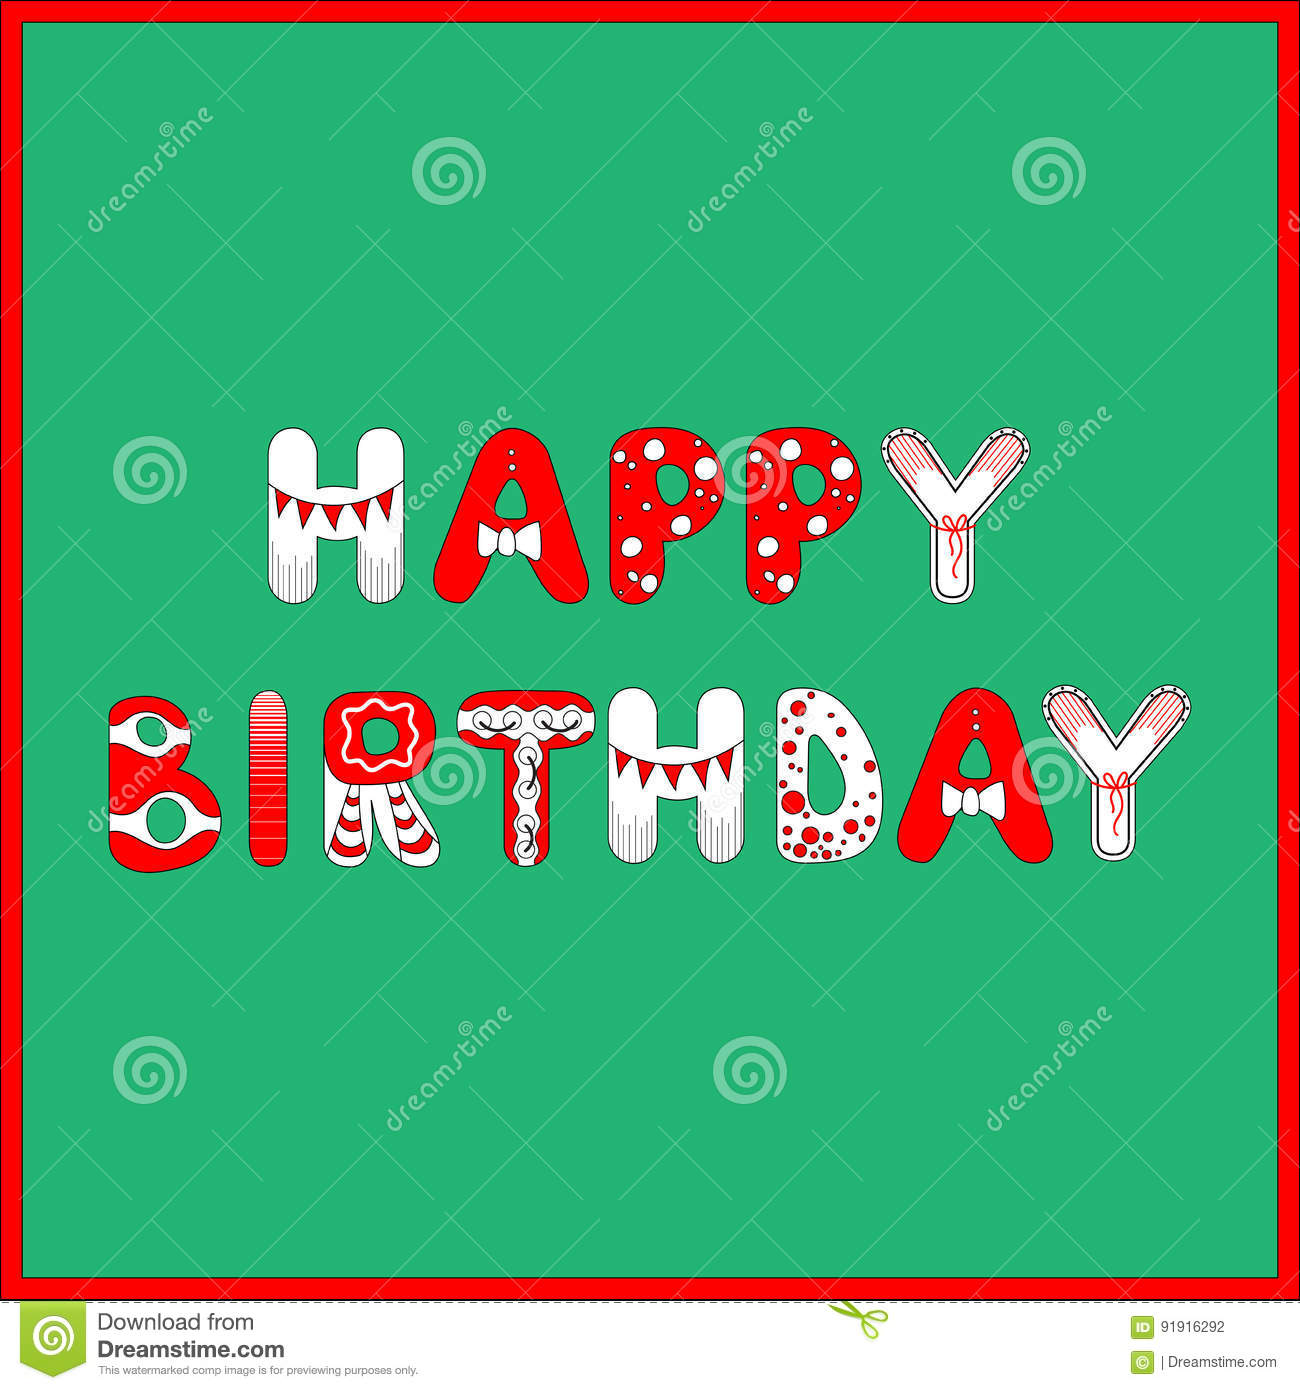 Happy Birthday Card In Red And White Colors On Green Background For